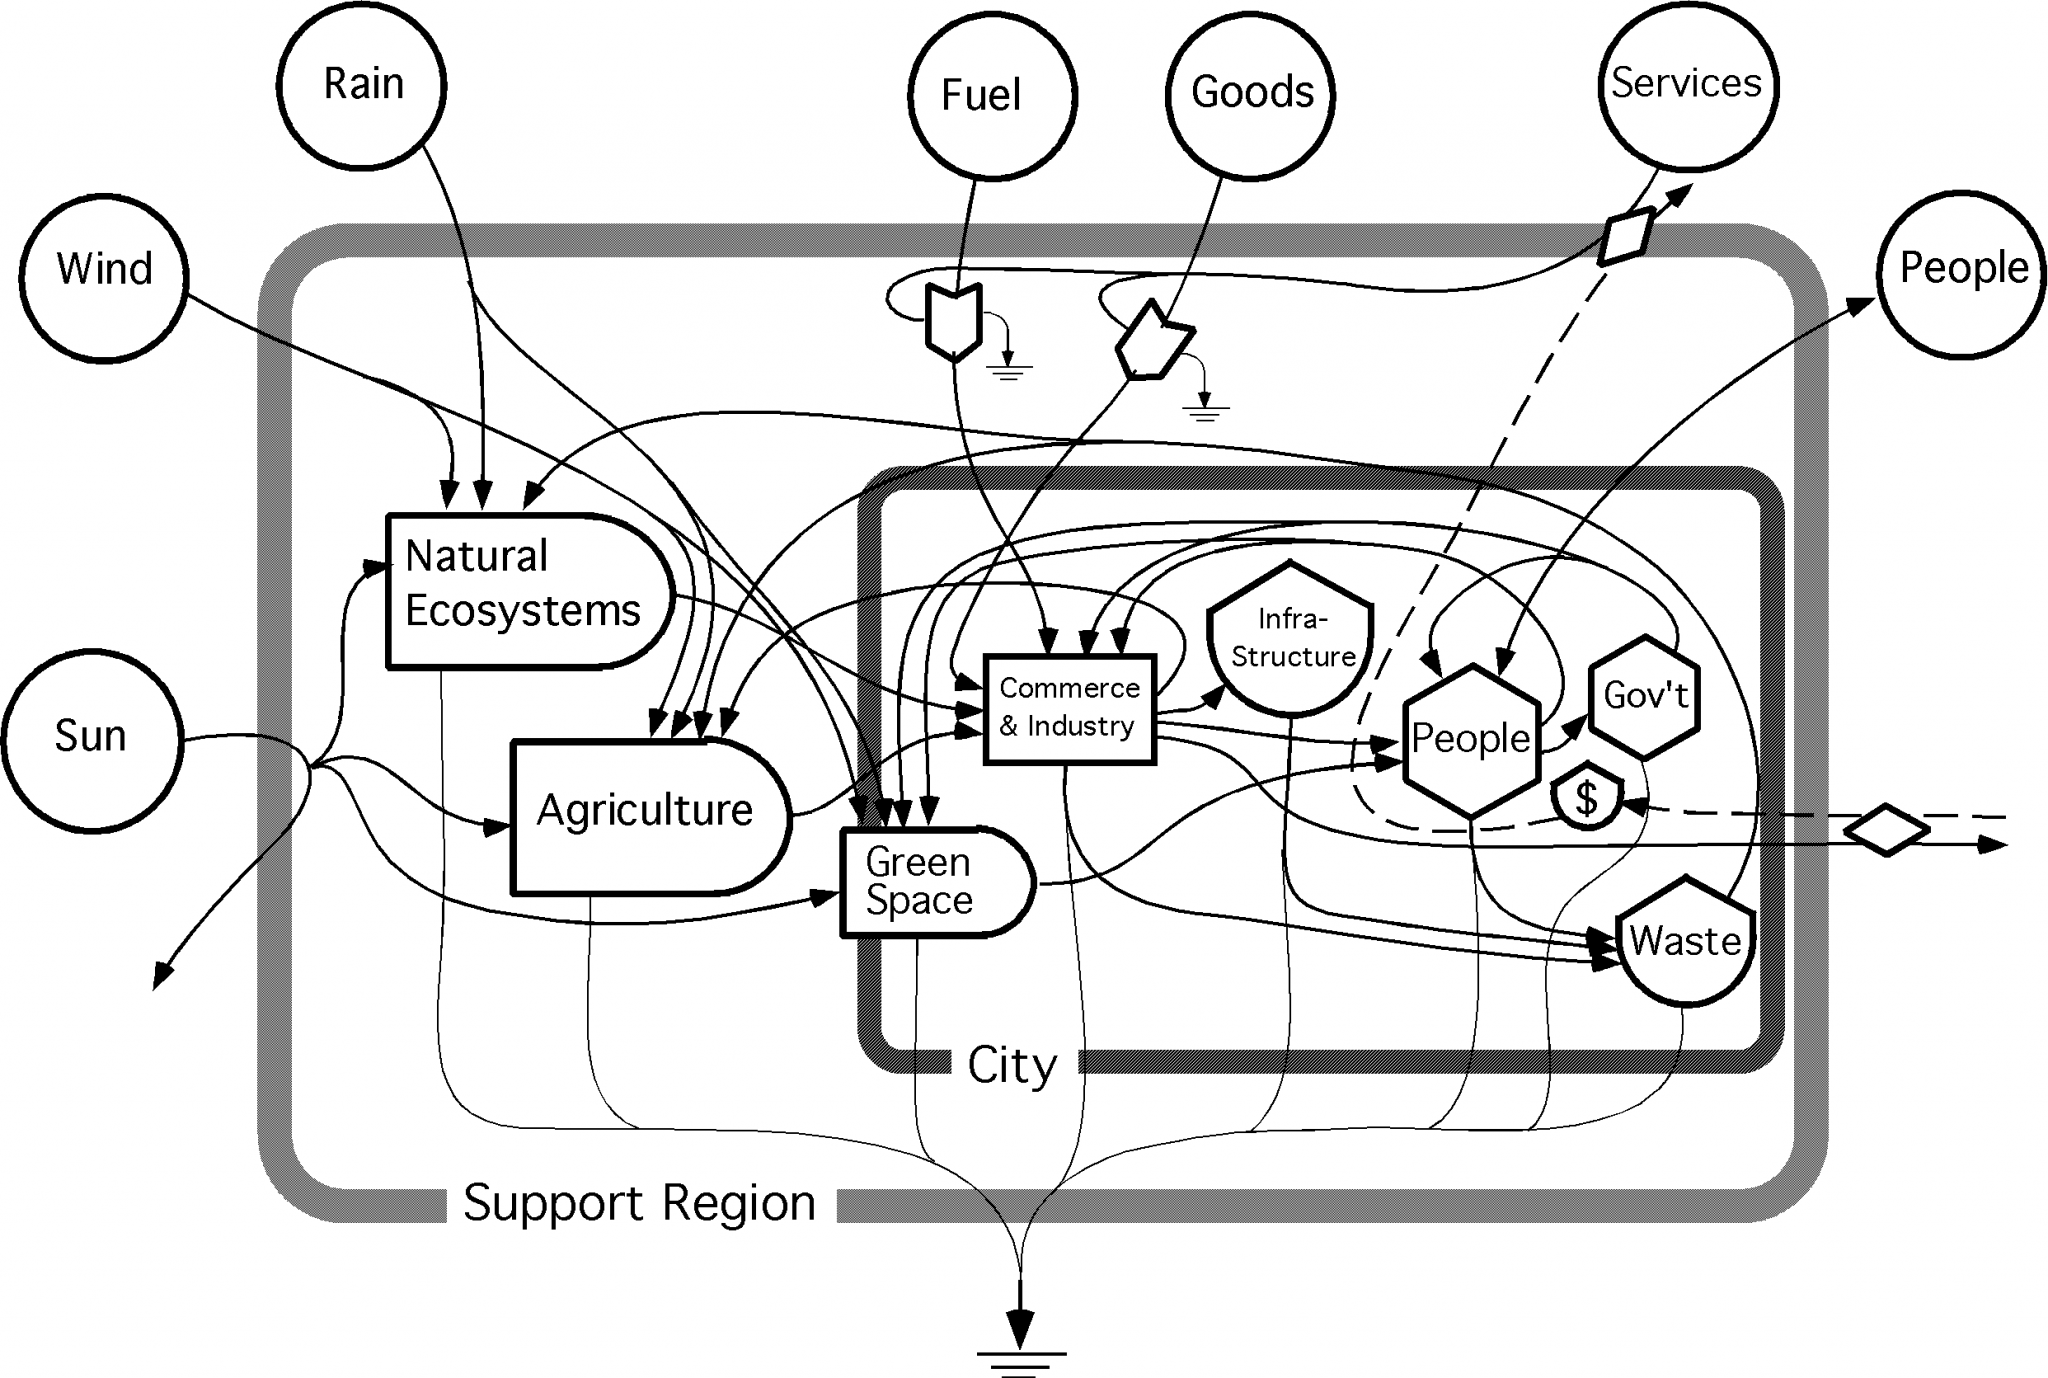 Systems Diagram Of A City